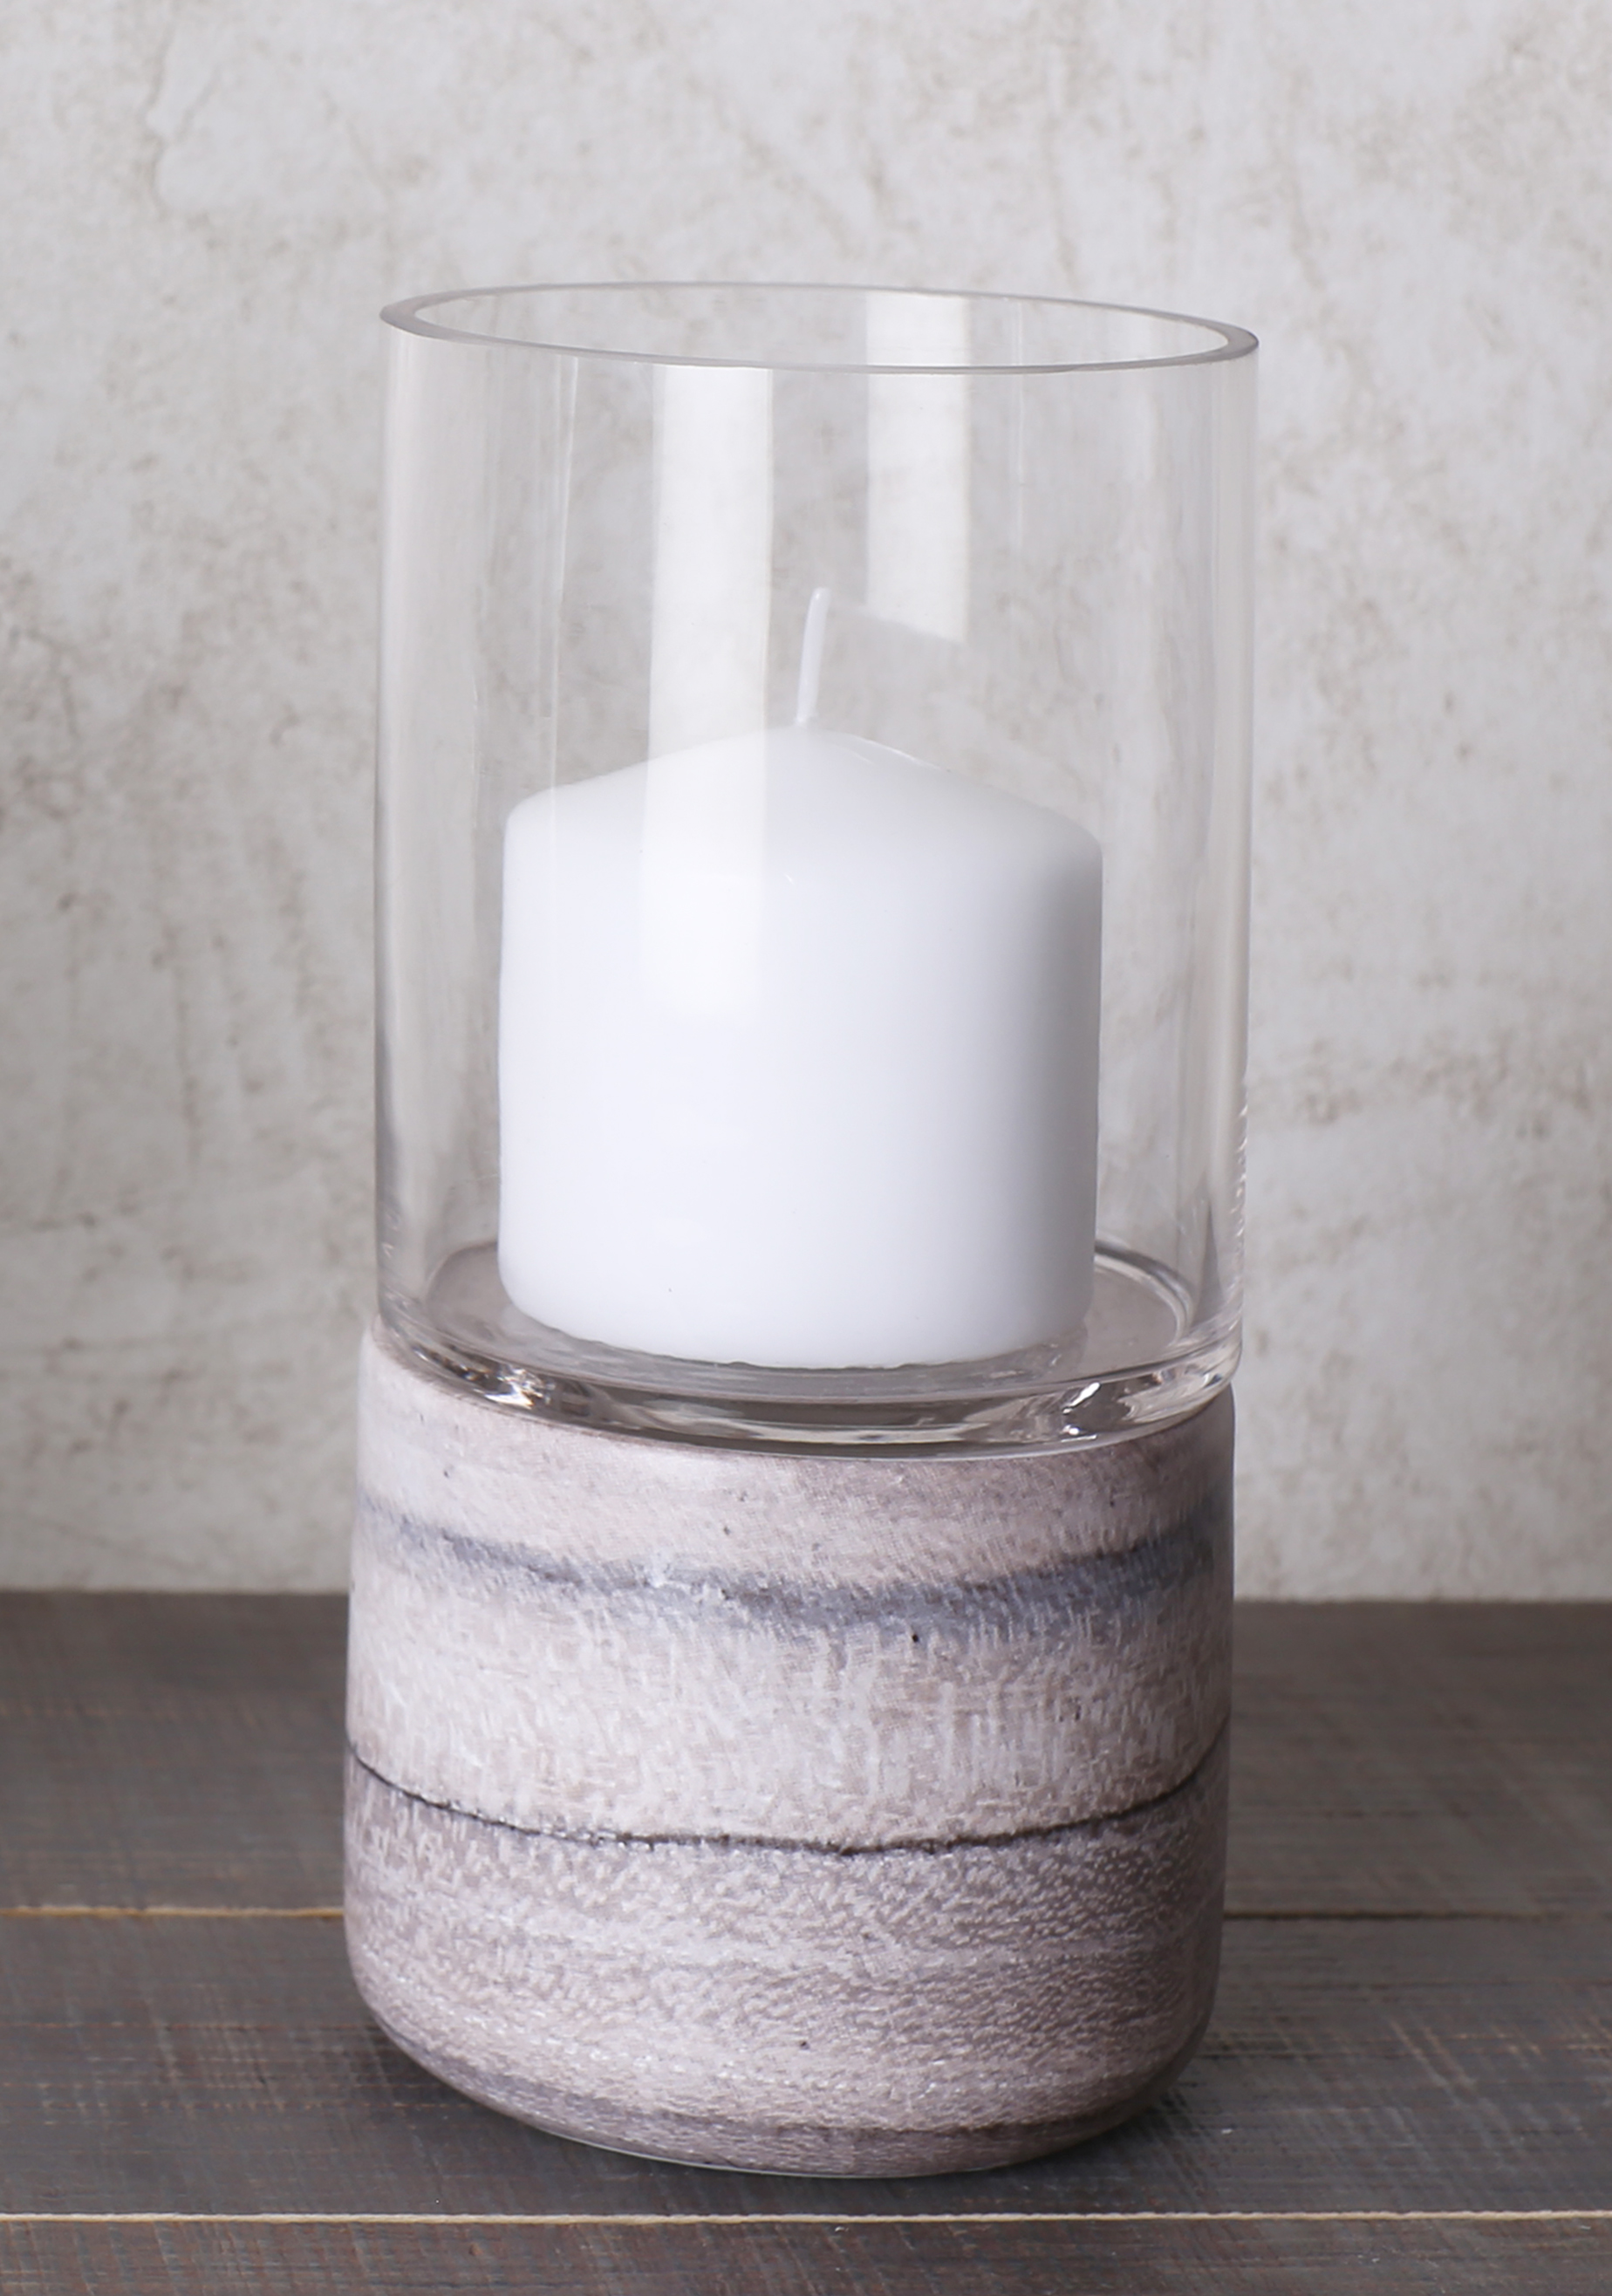 Small Dome Hurricane Candle Holder, Large Decorative Hurricane Lamps